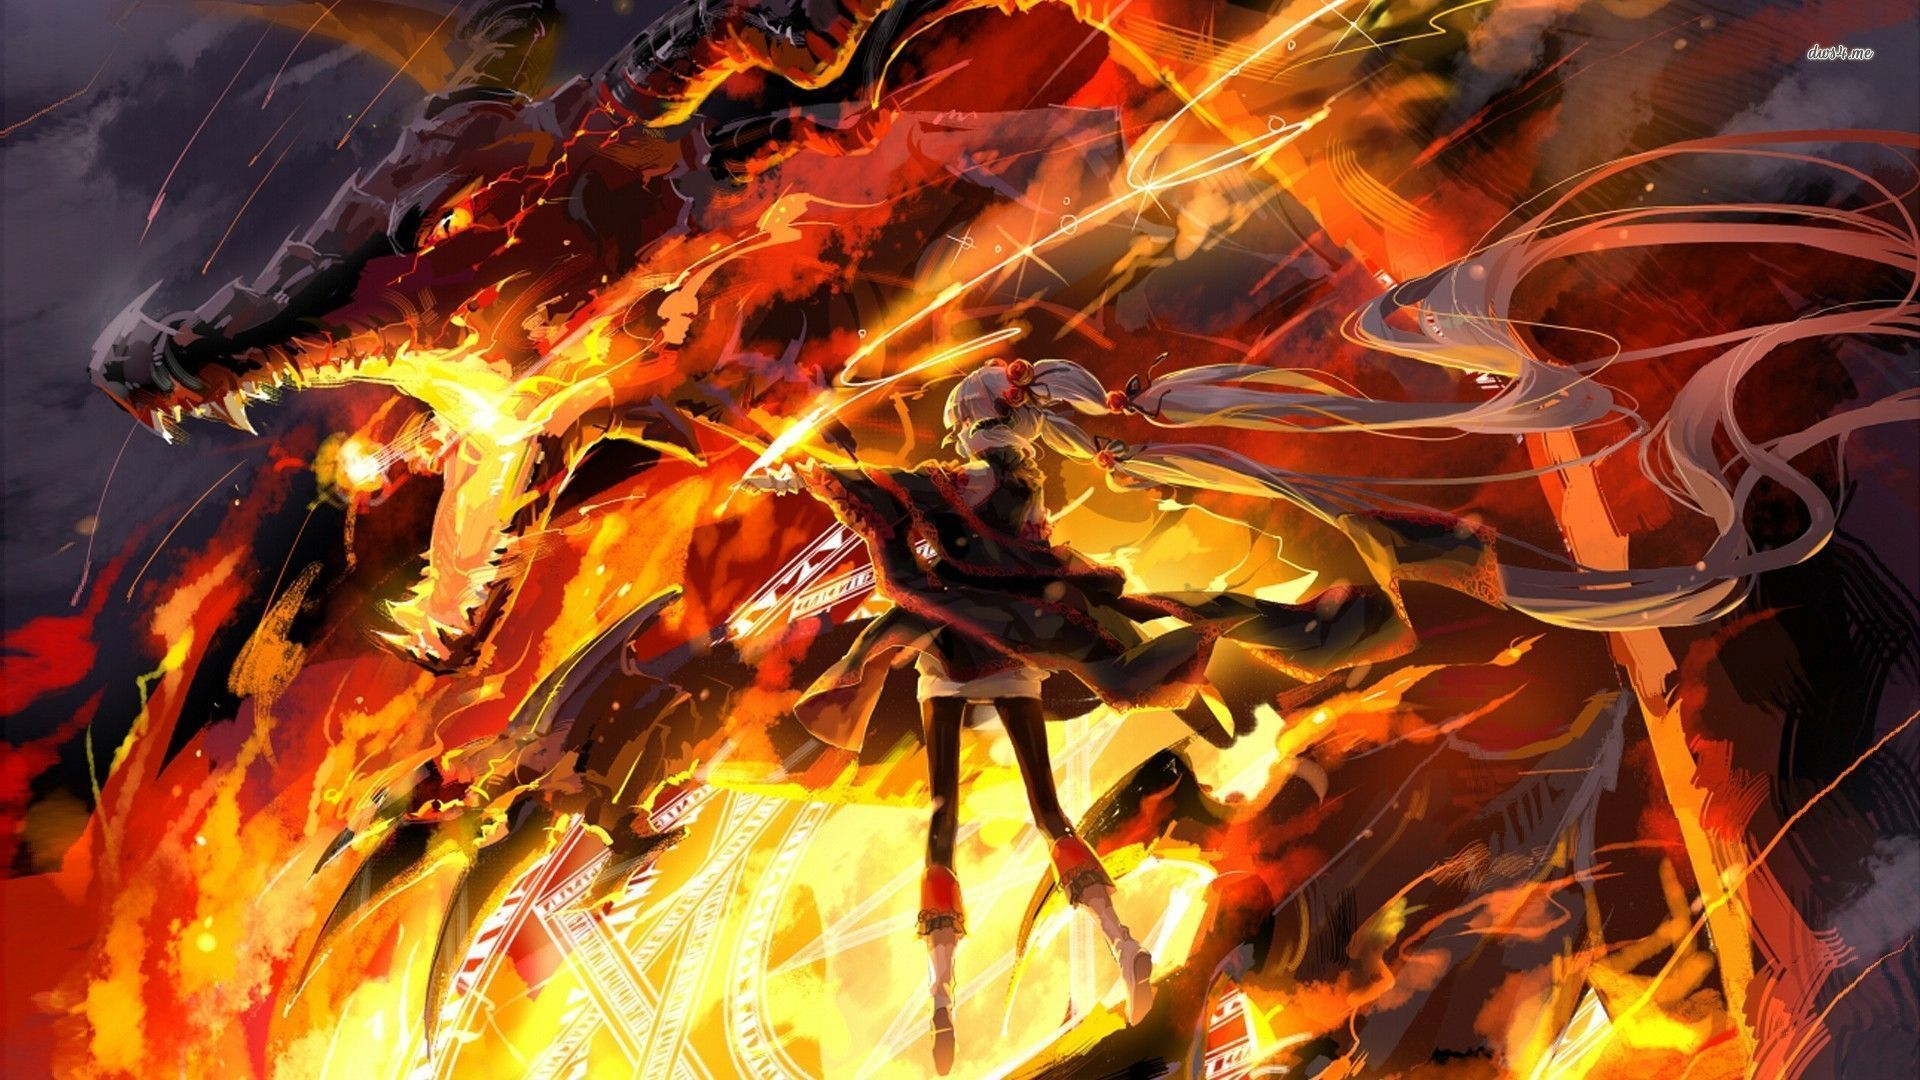 Fire Anime Wallpapers - Top Free Fire Anime Backgrounds